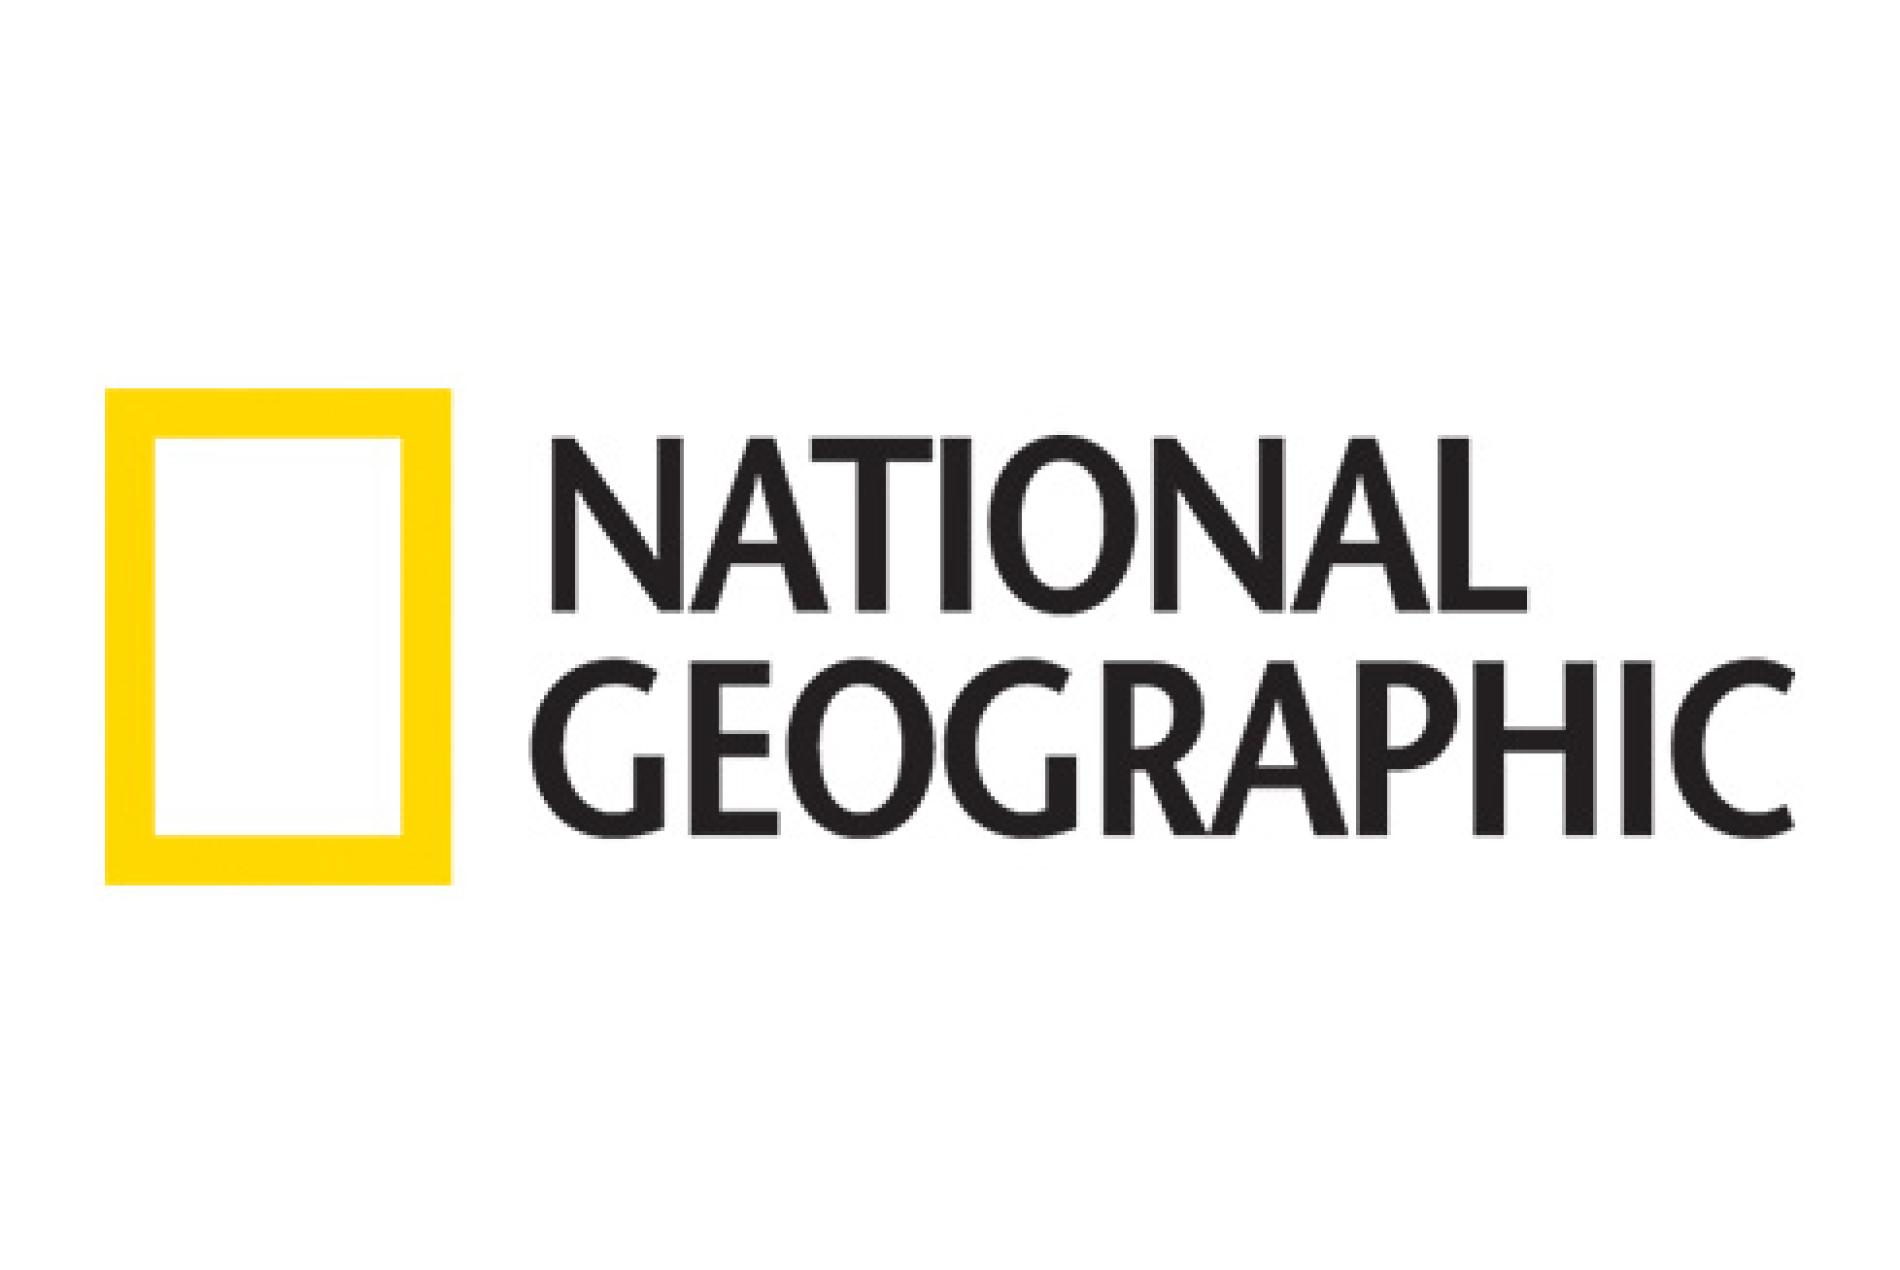 https://extreme-expeditions.ro/wp-content/uploads/2019/12/National-Geographic-Logo.ngsversion.1474040243902.adapt_.1900.1.jpg